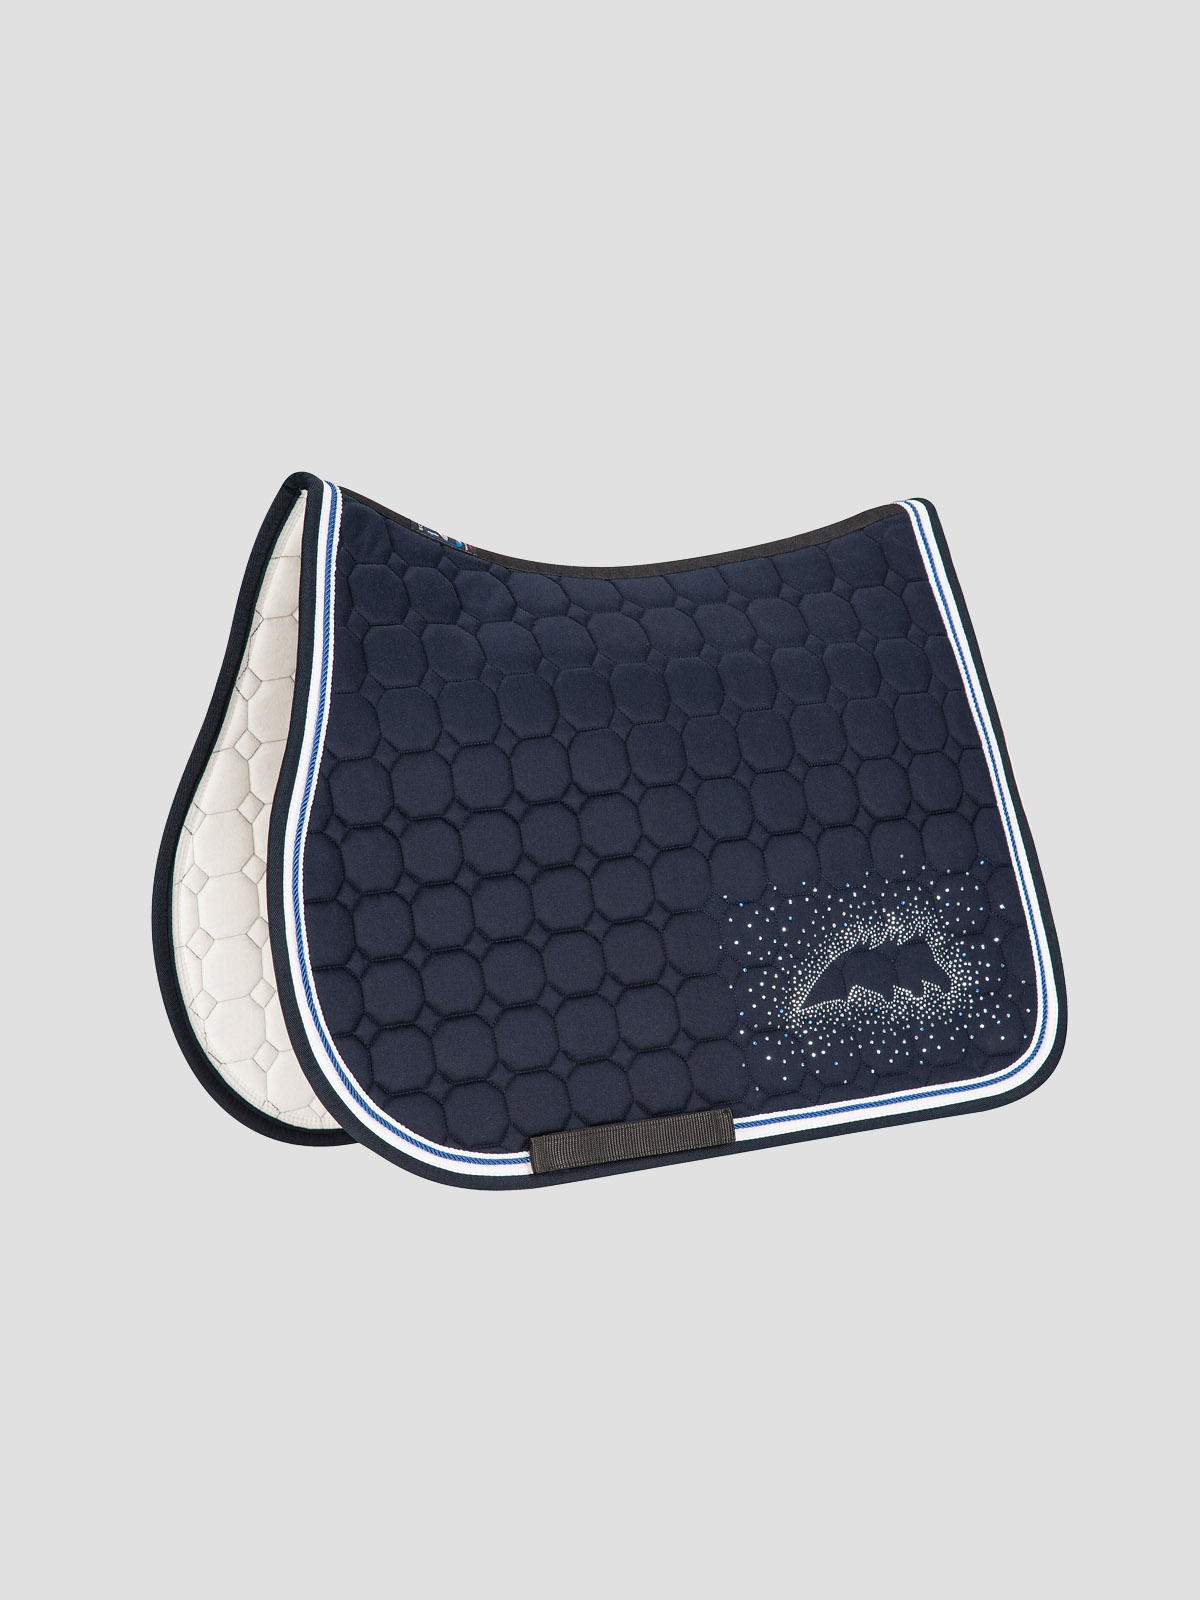 JOYCE - Octagon Saddle Pad with Equiline Logo and Studs 3